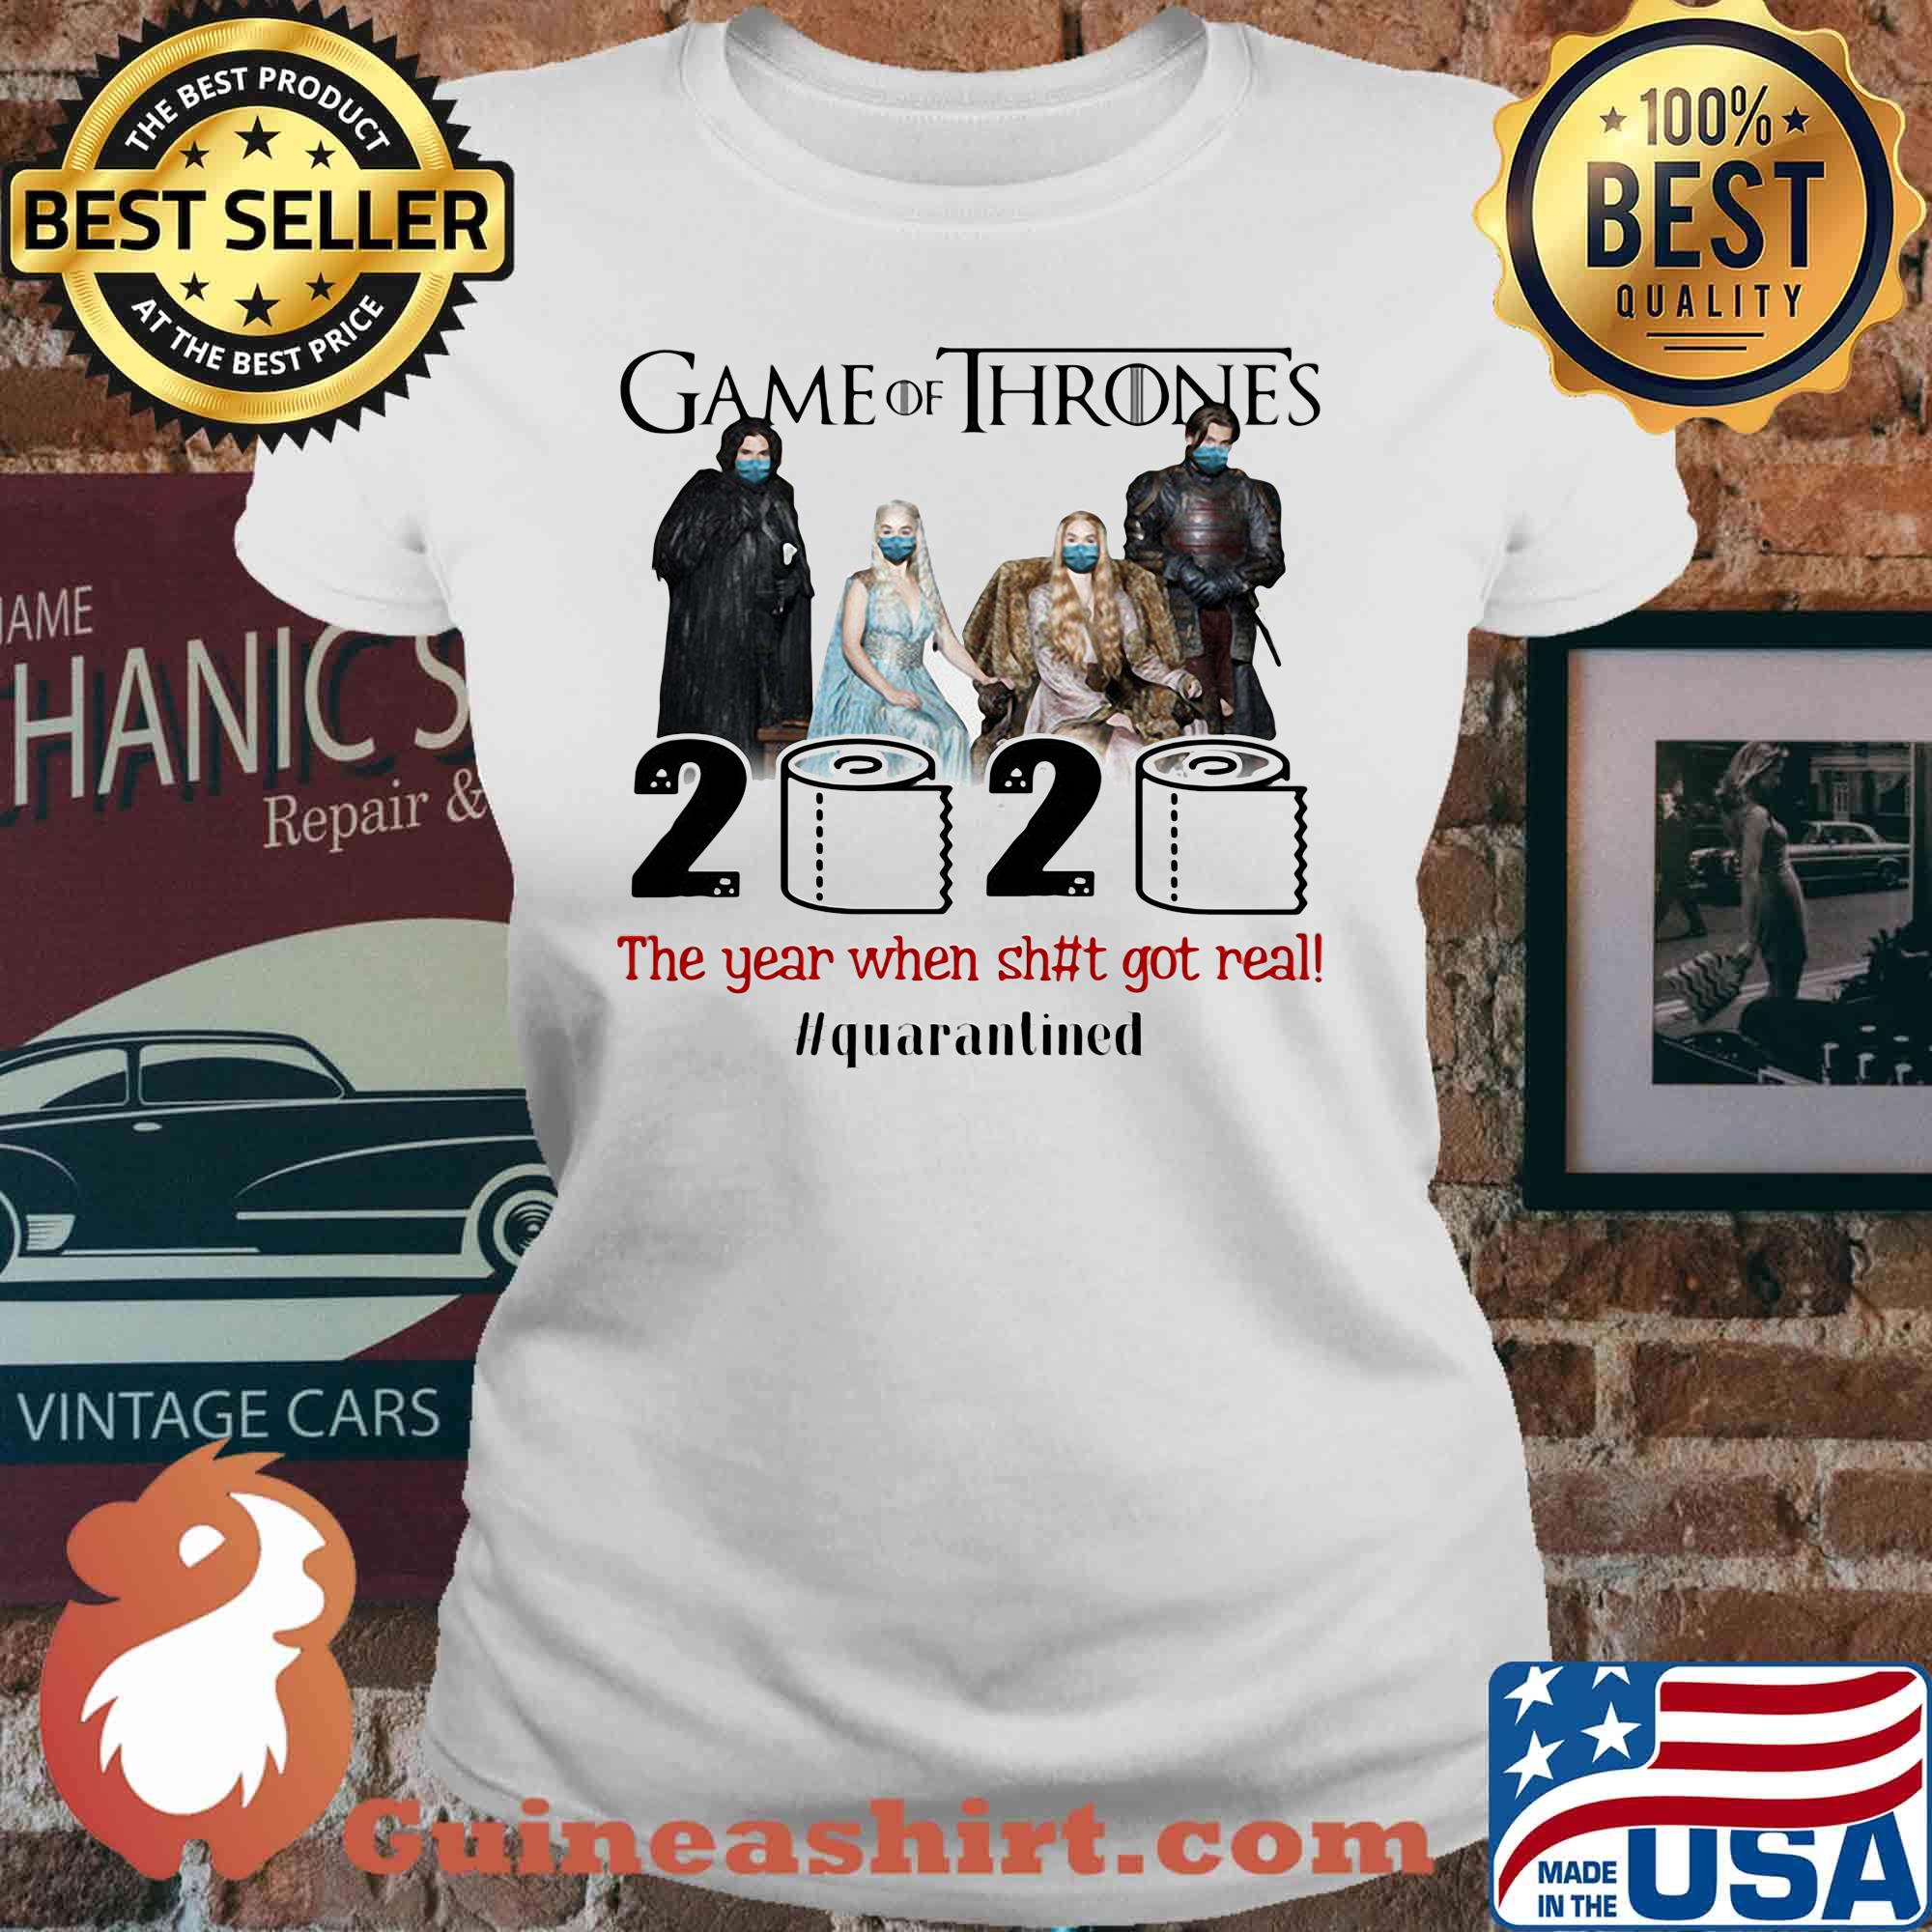 Game Of Thrones Movie 2020 The Year When Shit Got Real Quarantined Toilet Paper Mask Covid 19 Shirt Guineashirt,Best Black Paint For Bathroom Cabinets